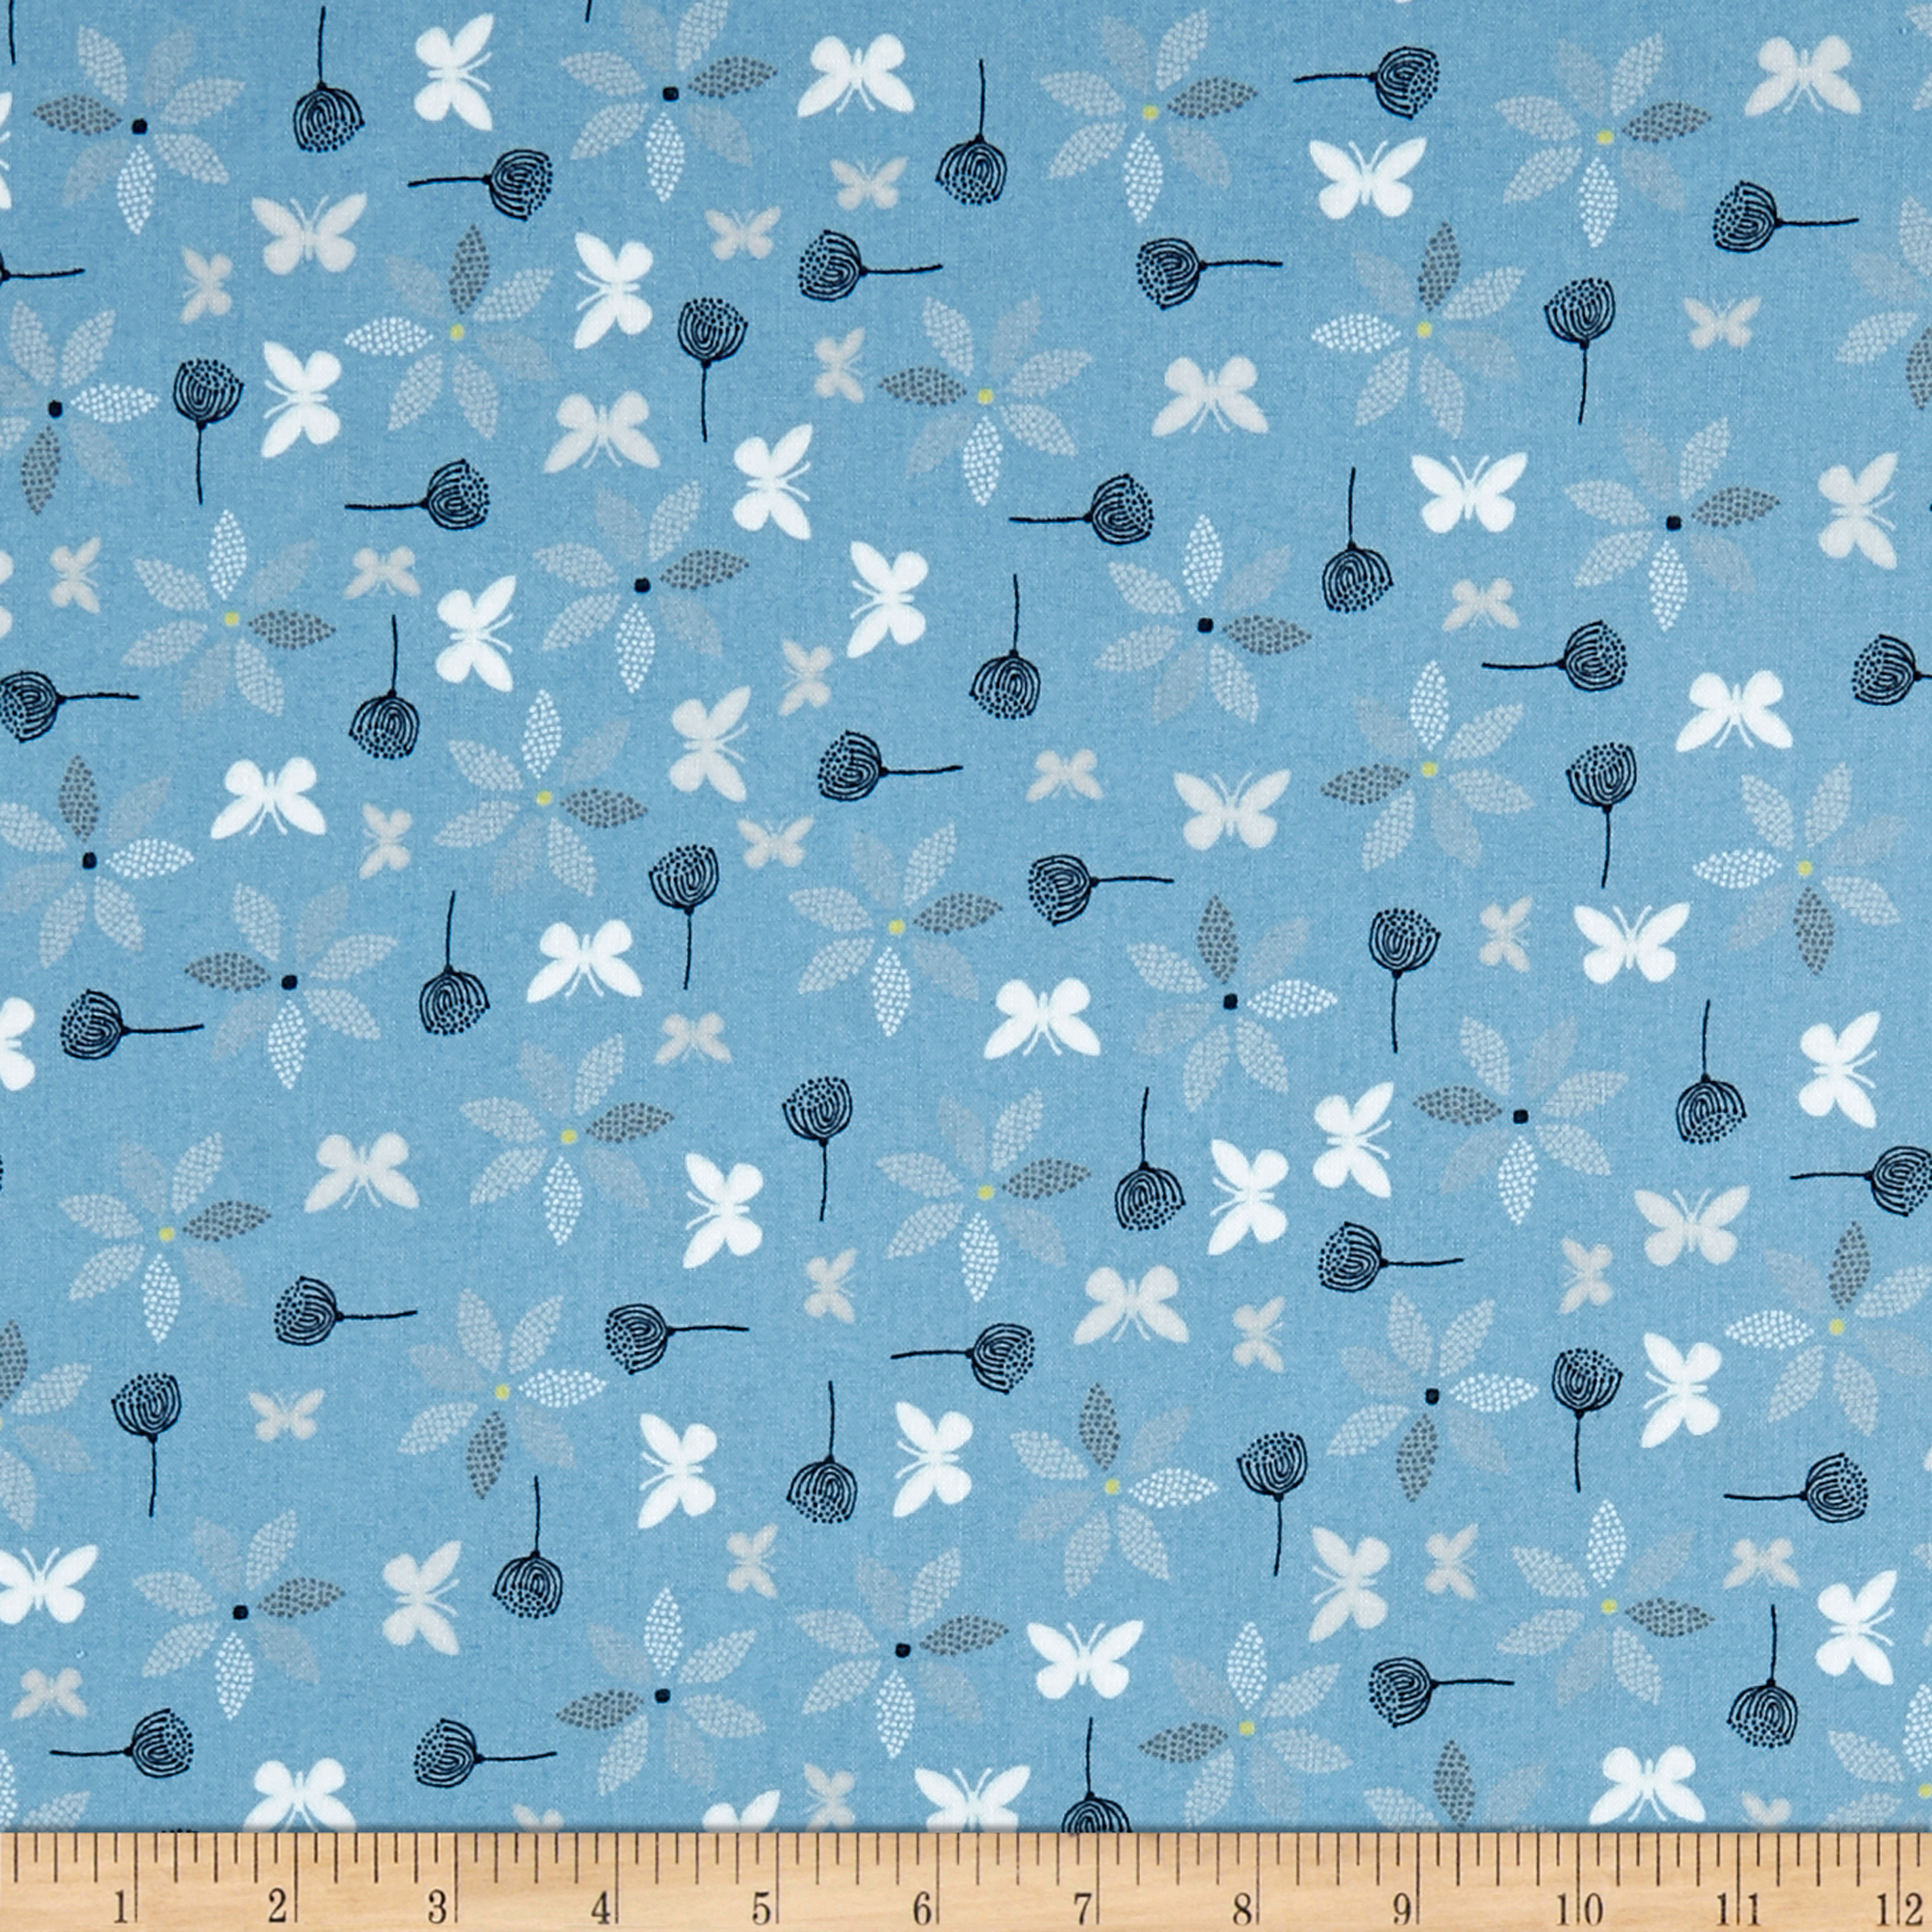 Stof Fabrics Denmark Hollie's Flowers Butterlies & Flowers Blue